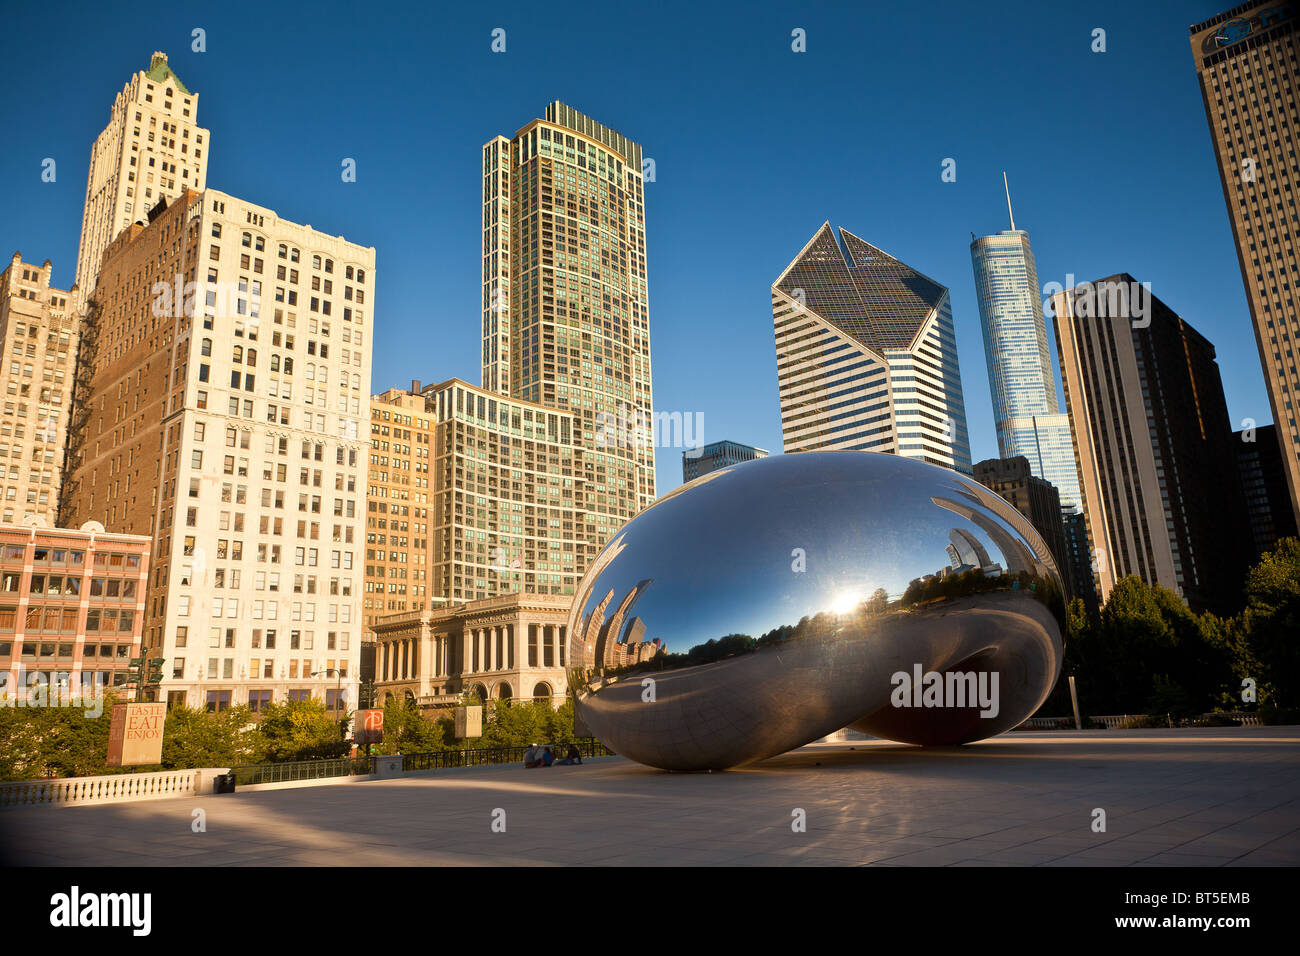 Cloud Gate knows as the Chicago Bean in Millennium Park in Chicago, IL, USA. The work is by artist Anish Kapoor. - Stock Image